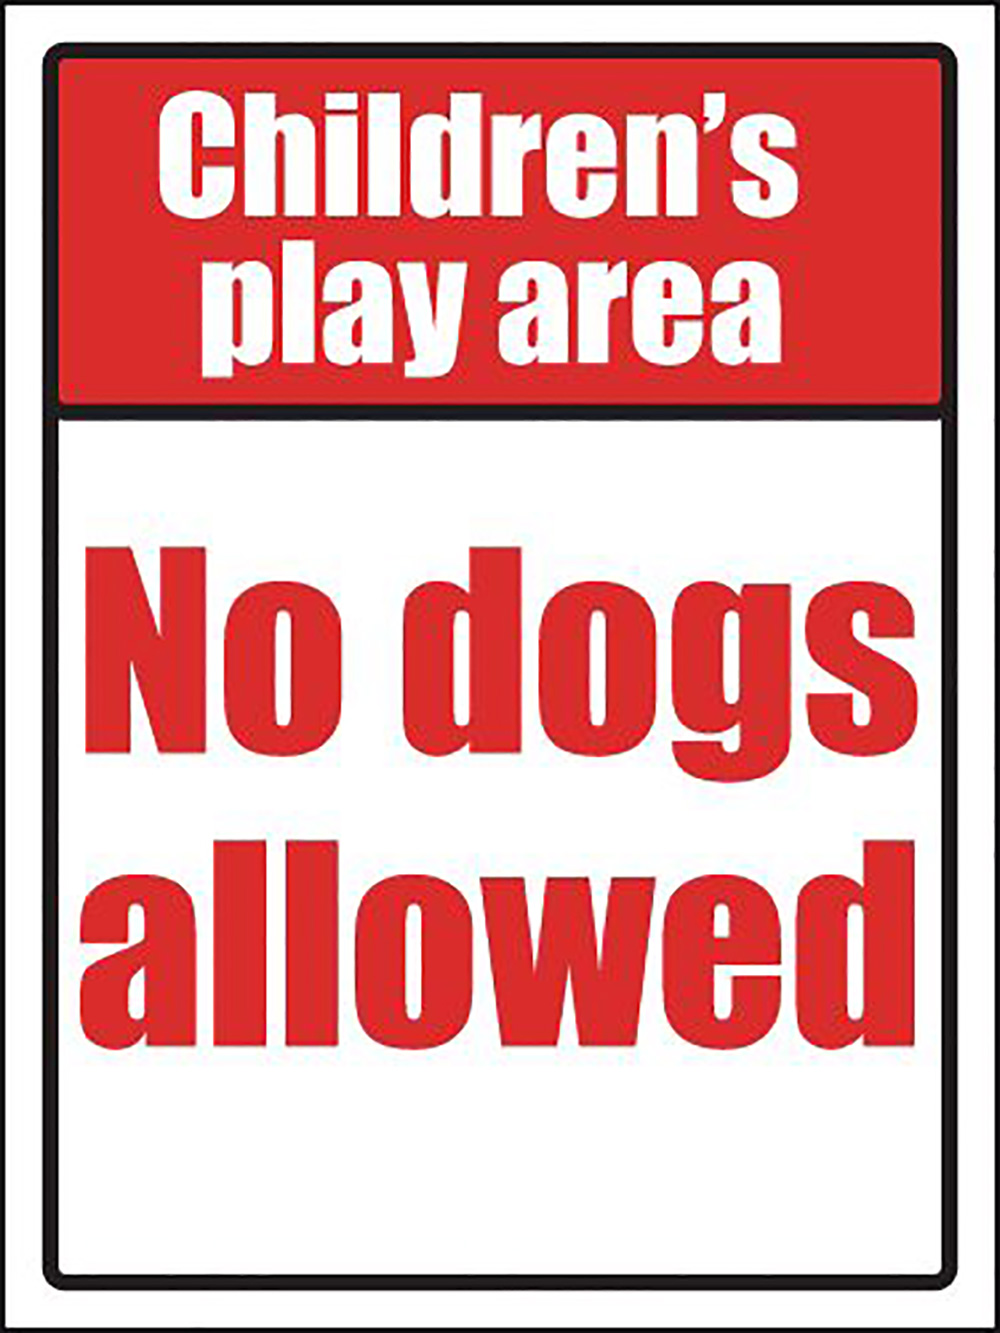 Childrens play area no dogs allowed School Sign 400x300mm 1.2mm Rigid Plastic Safety Sign